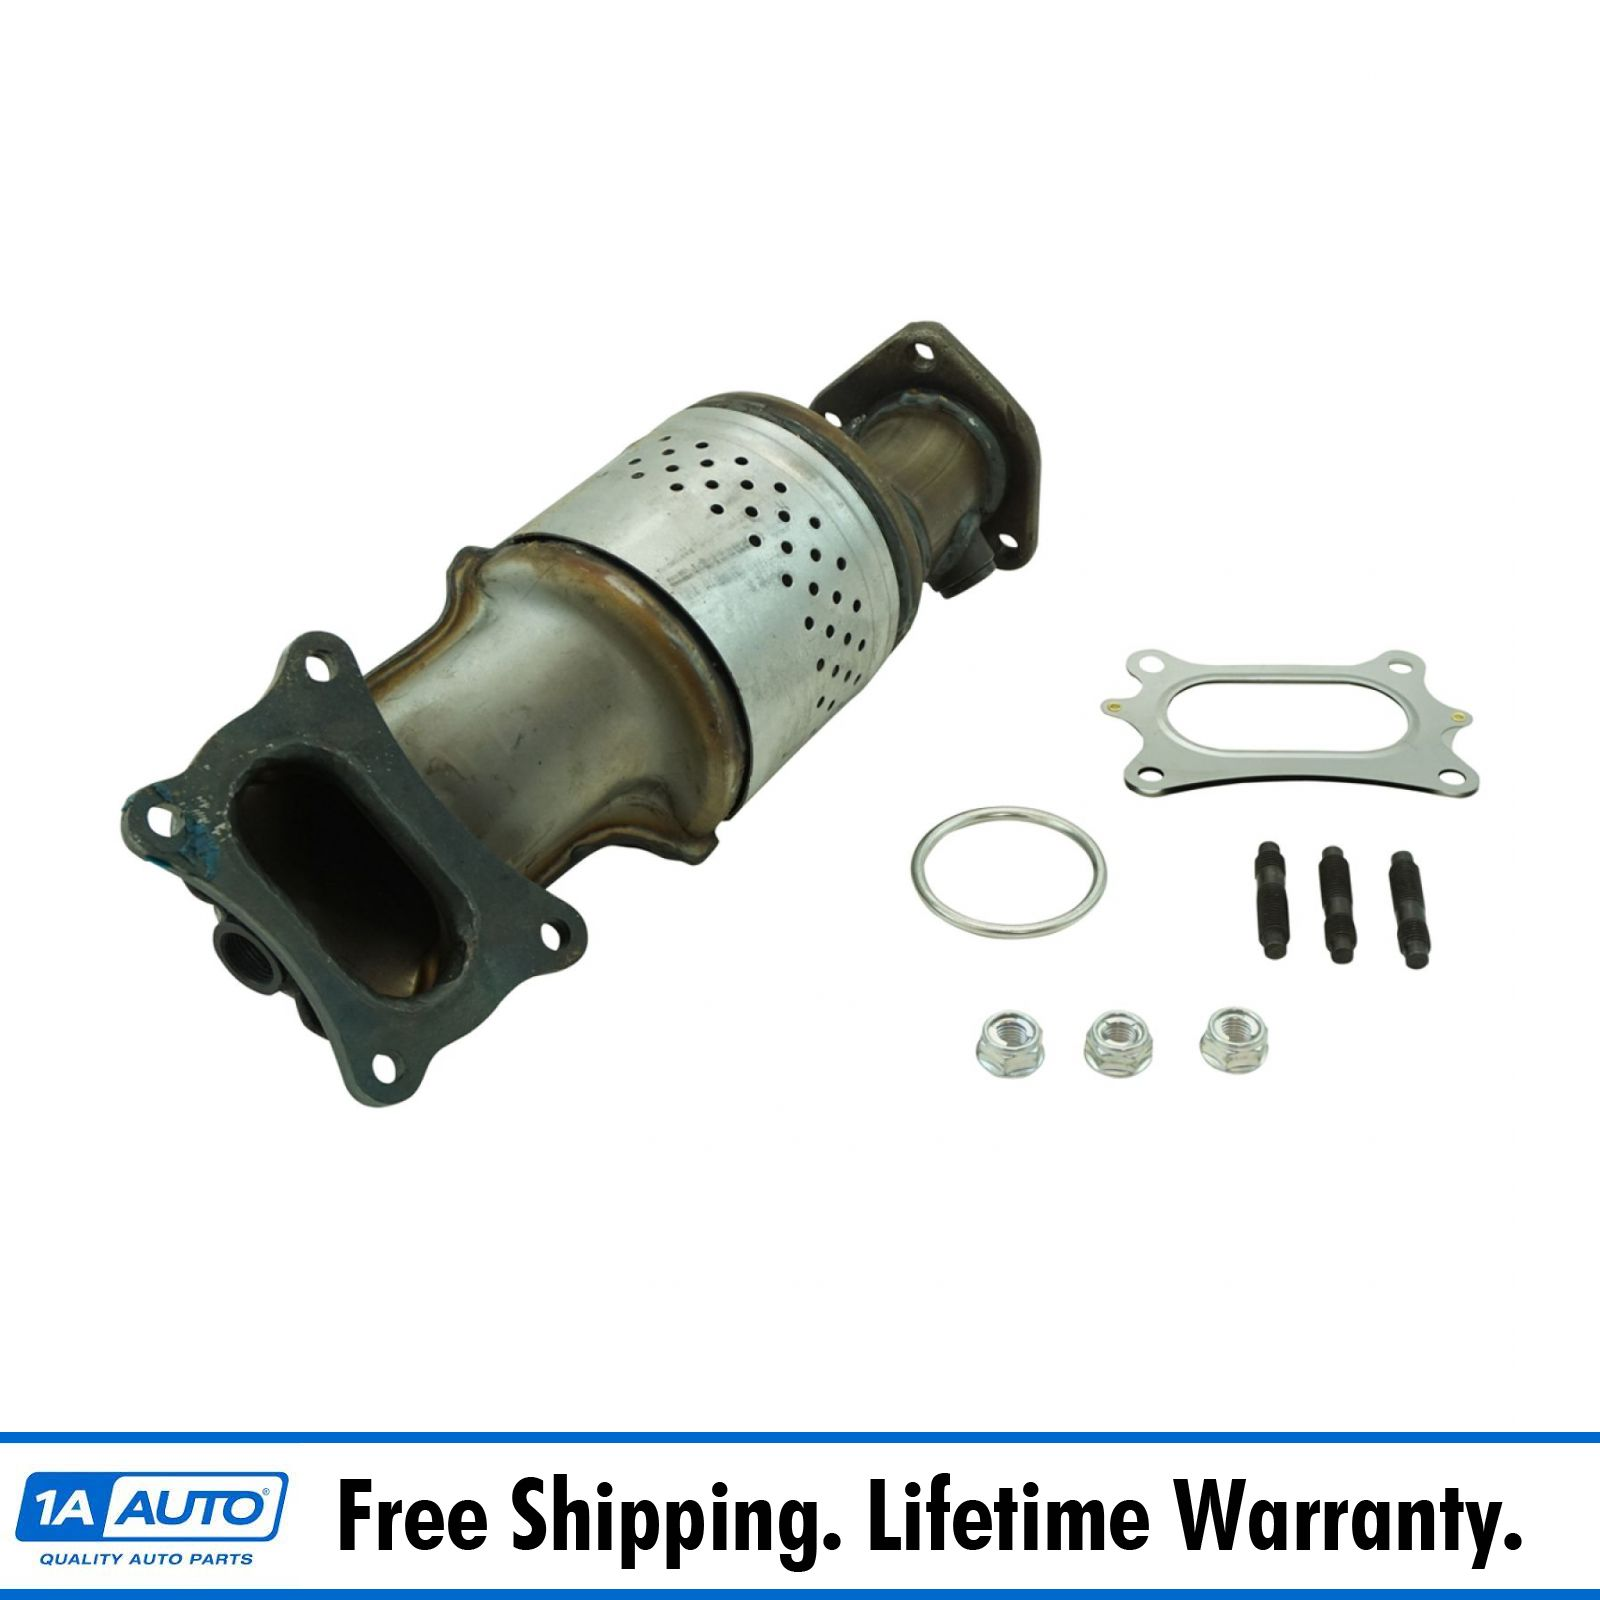 Front Exhaust Manifold Catalytic Converter with Gasket ...